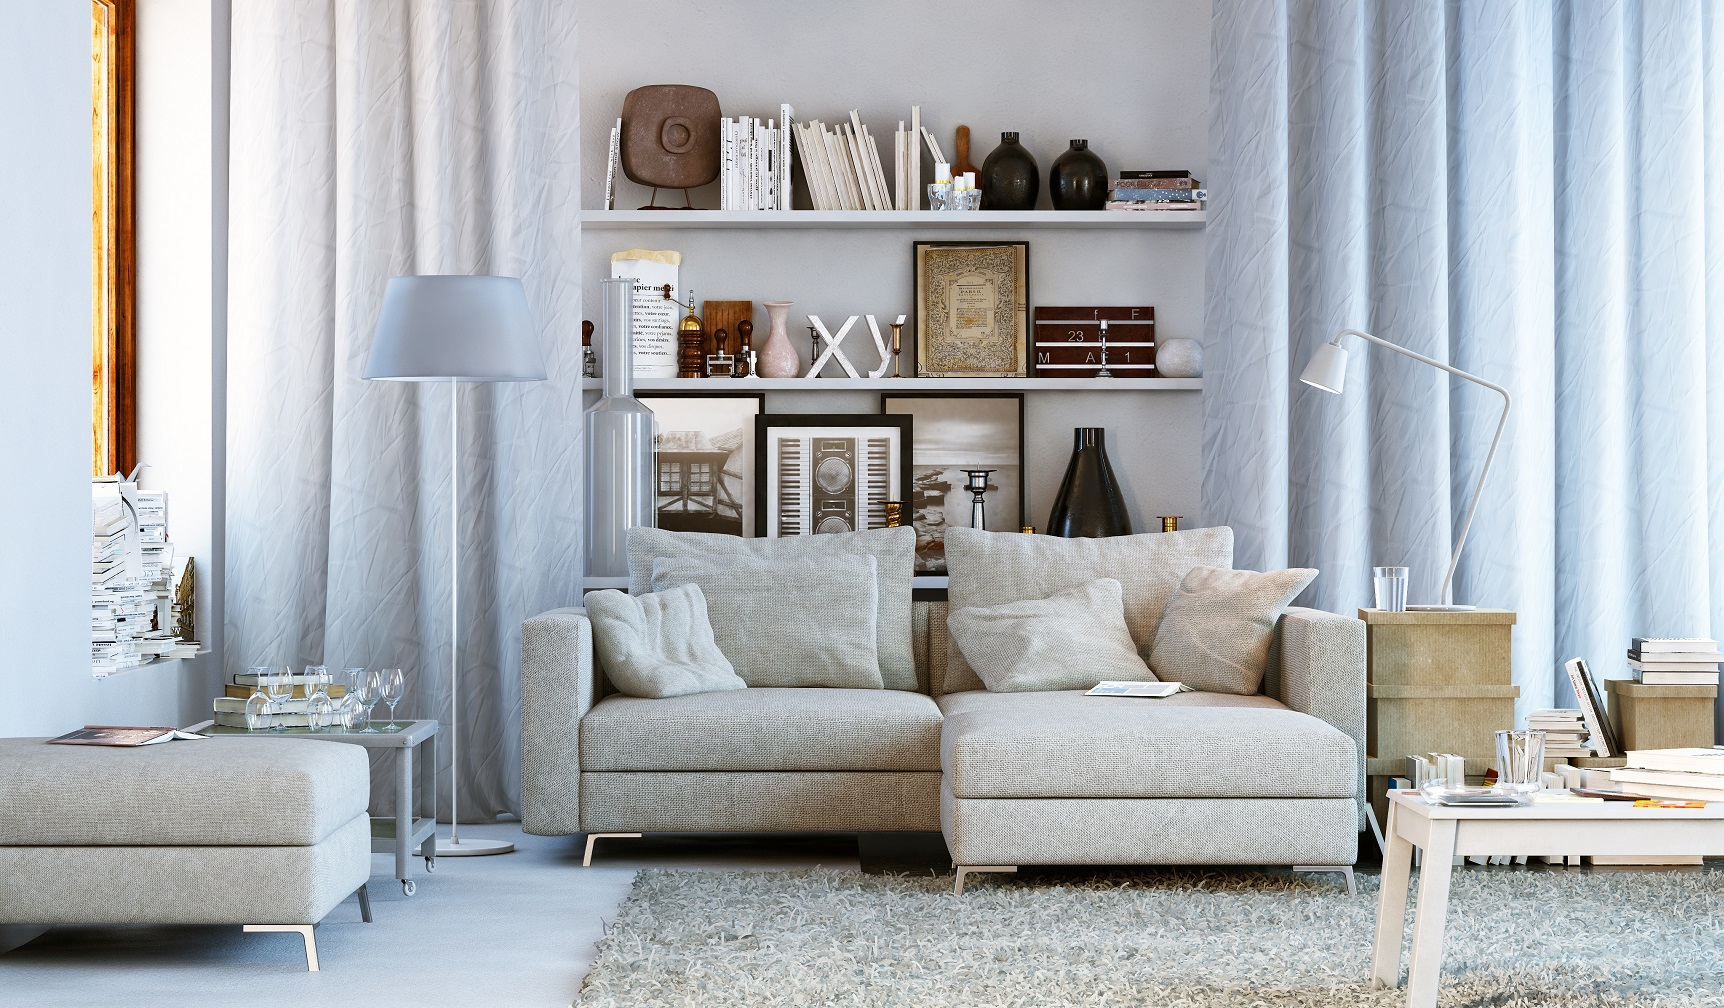 Wohnzimmer in Wohnung – Small living room